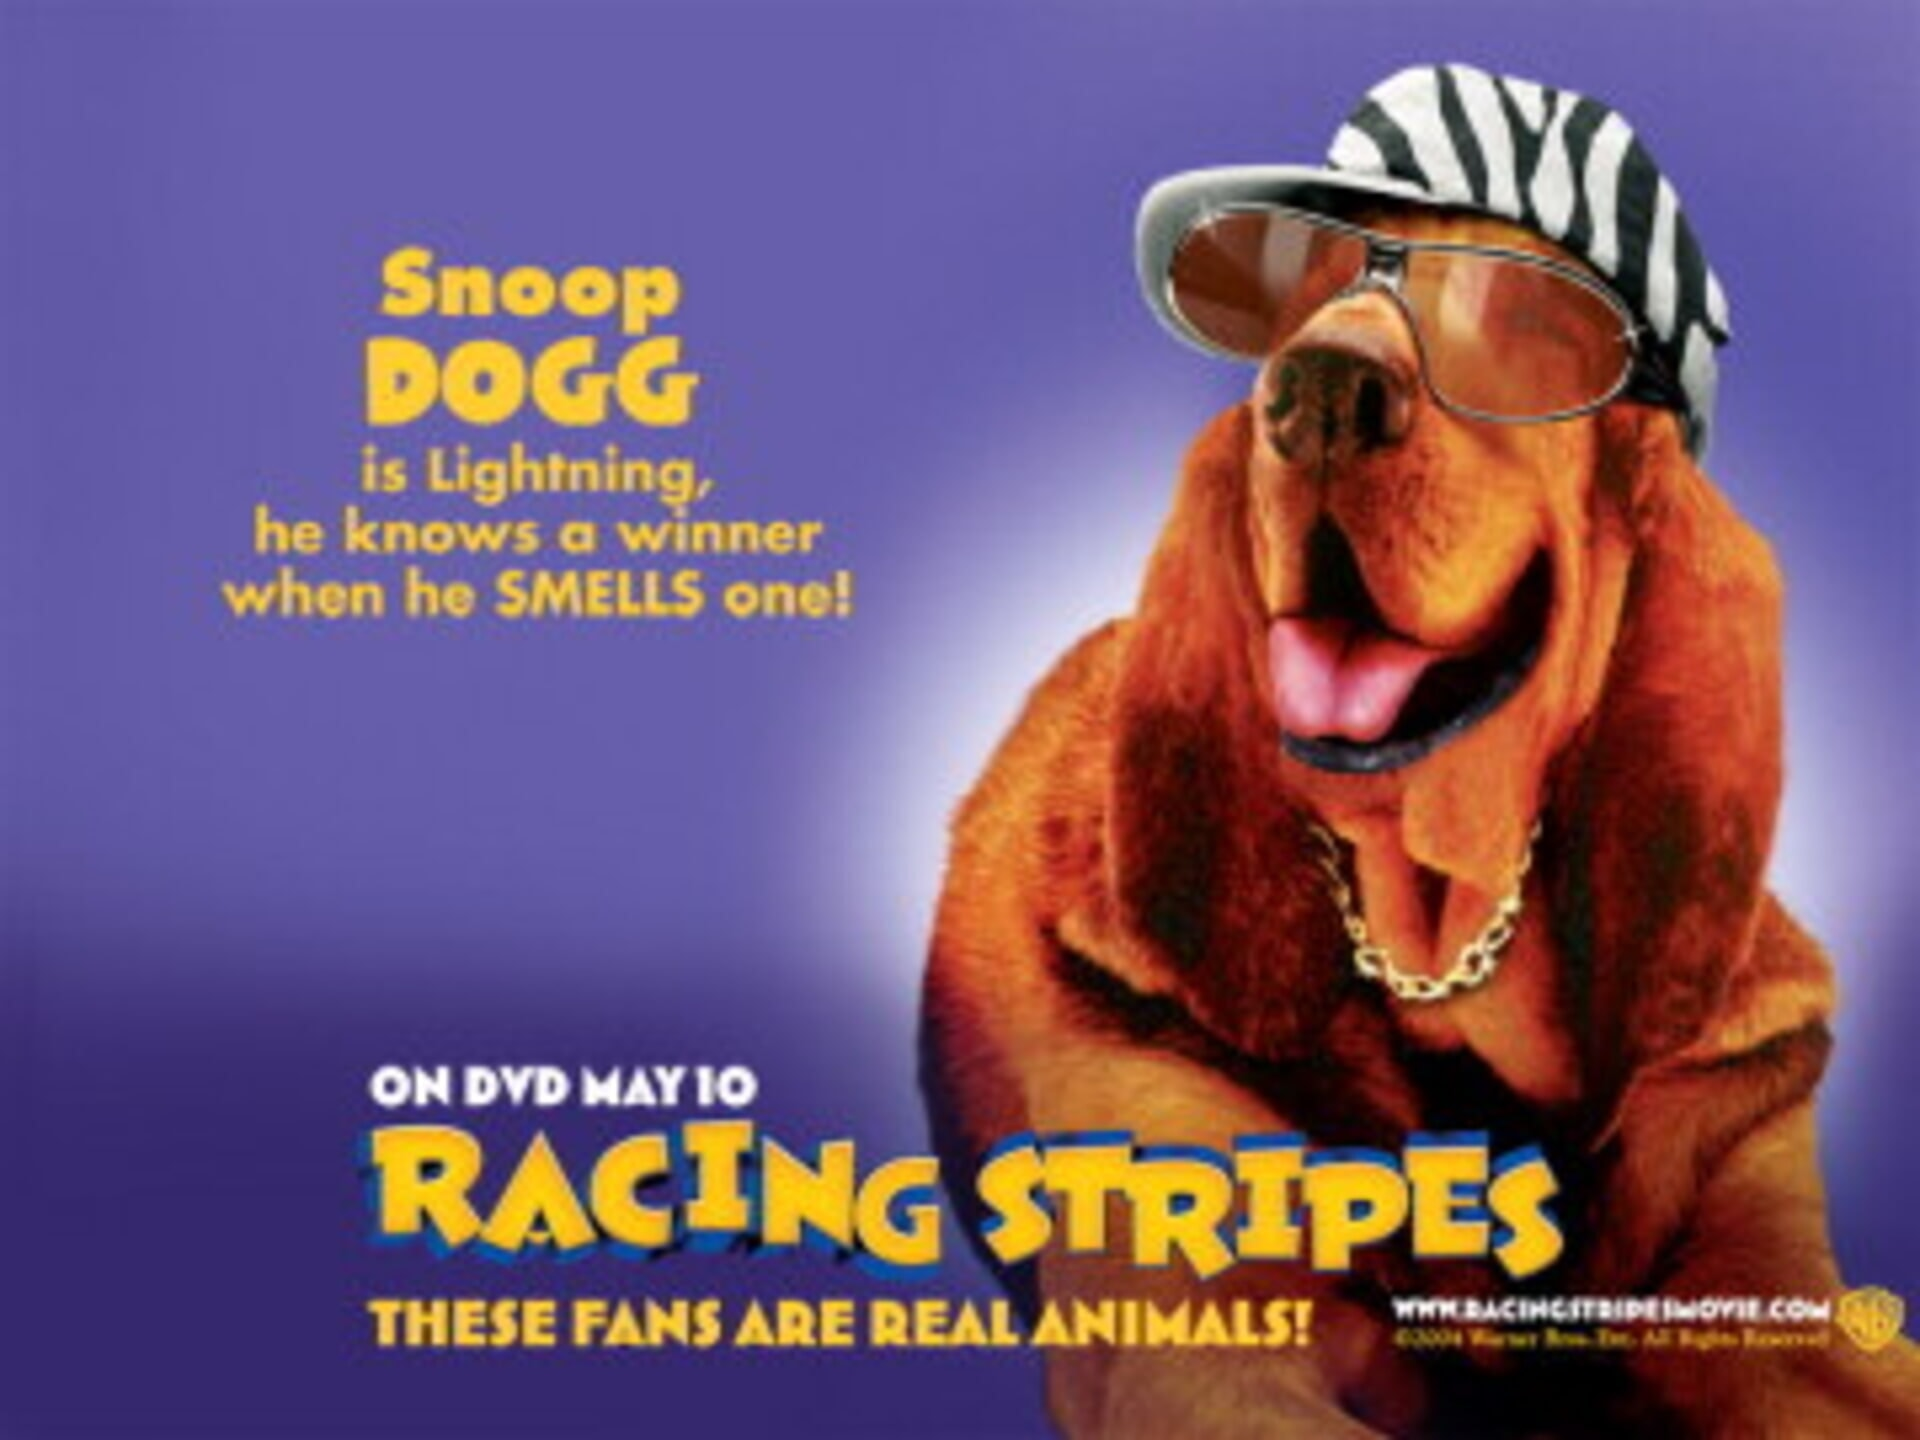 Racing Stripes - Image 65